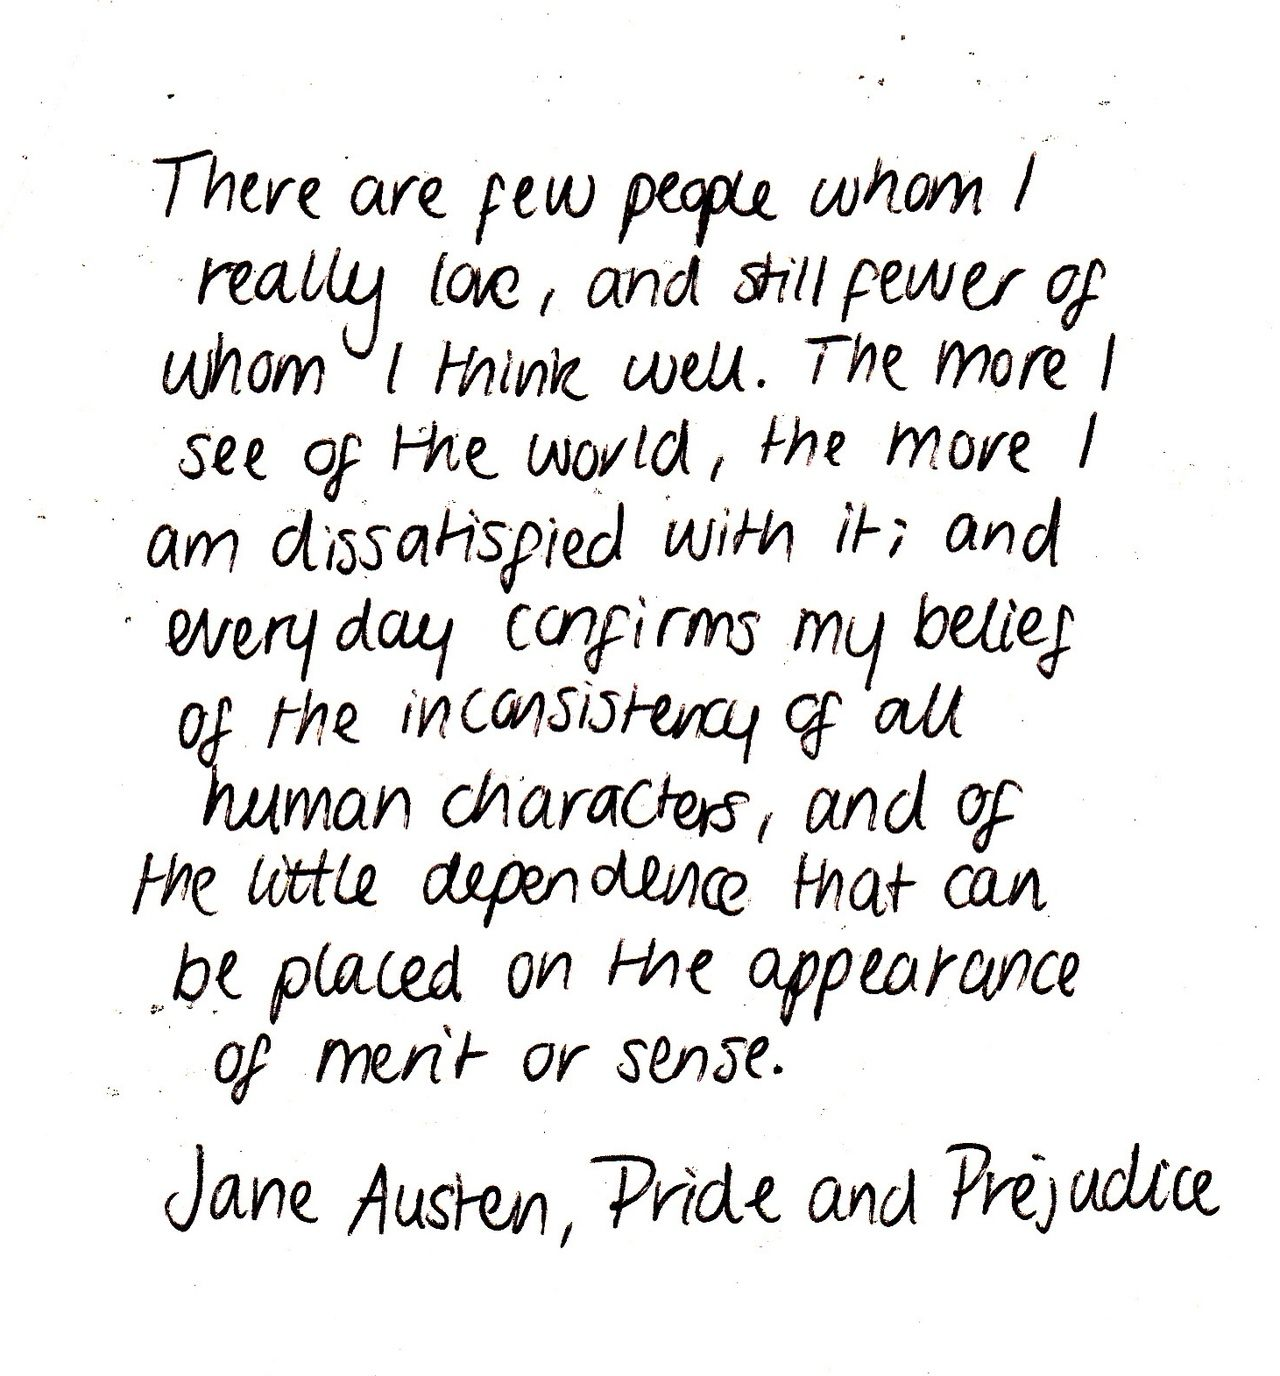 Quotes About Love And Marriage In Pride And Prejudice : Pride and Prejudice Quotes